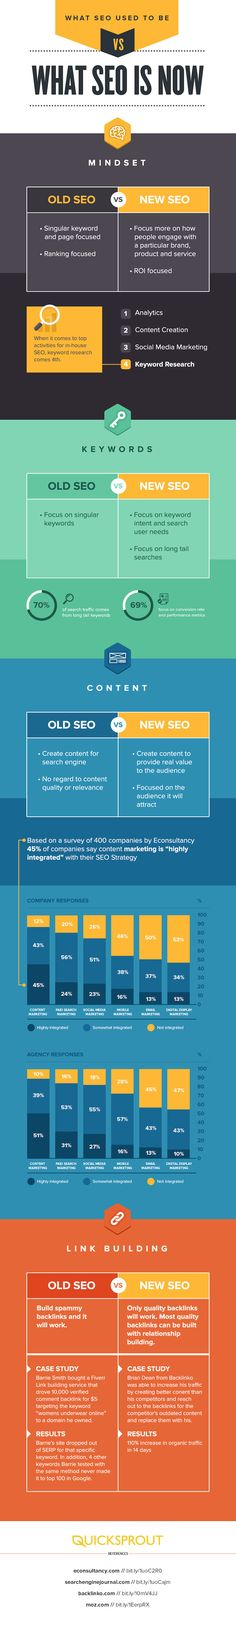 #SEO Versus New SEO: What You Need to Know - #infographic | Digital Information World